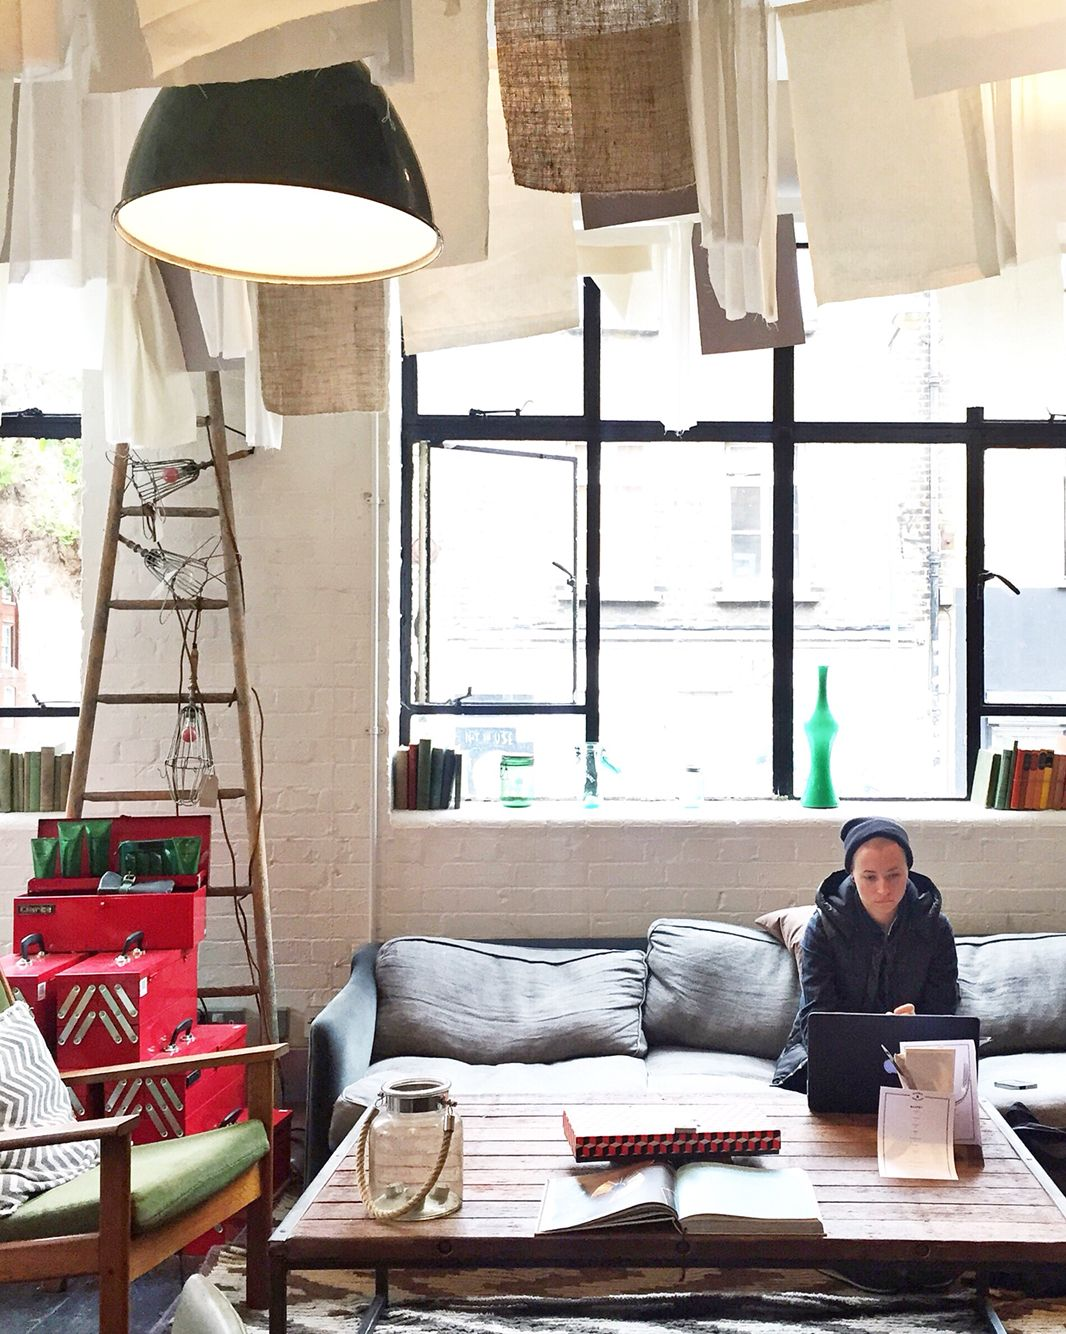 Hang Out In Super Trendy Shoreditch At Barber Parlour A Cafe Restaurant Bar Living Room Clothing Store Shop Beauty Salon And Cinema Wrapped